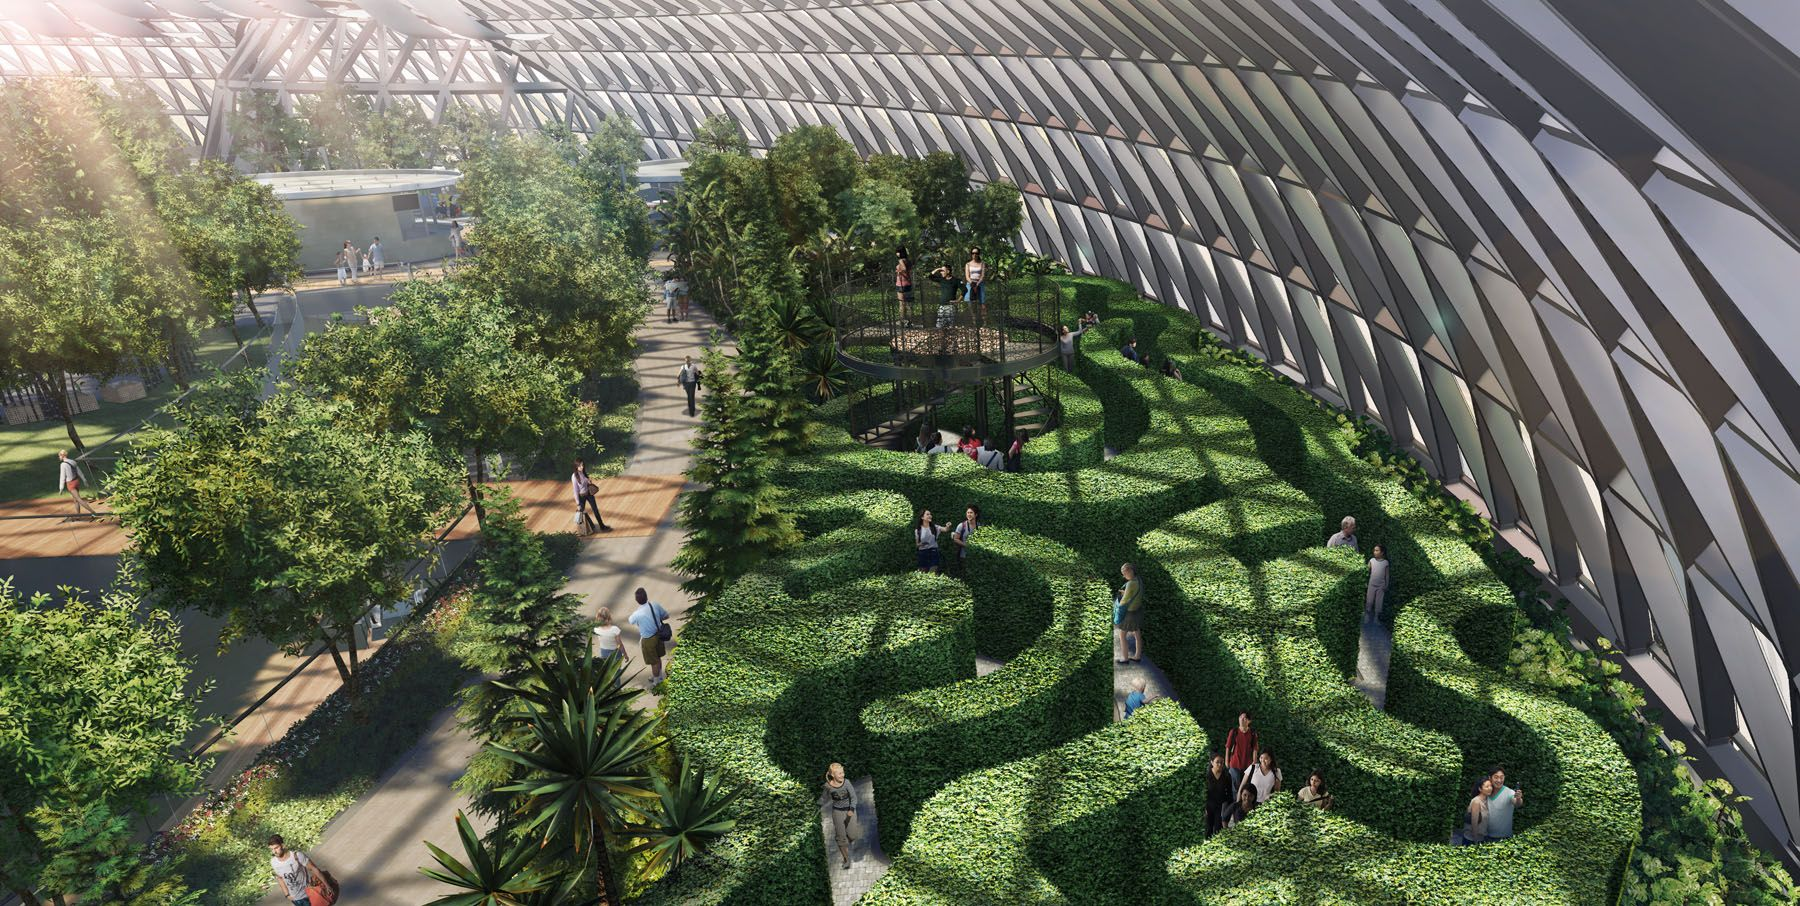 The Singapore Changi Airport Is The Best Airport In The World And It's Getting Even Better